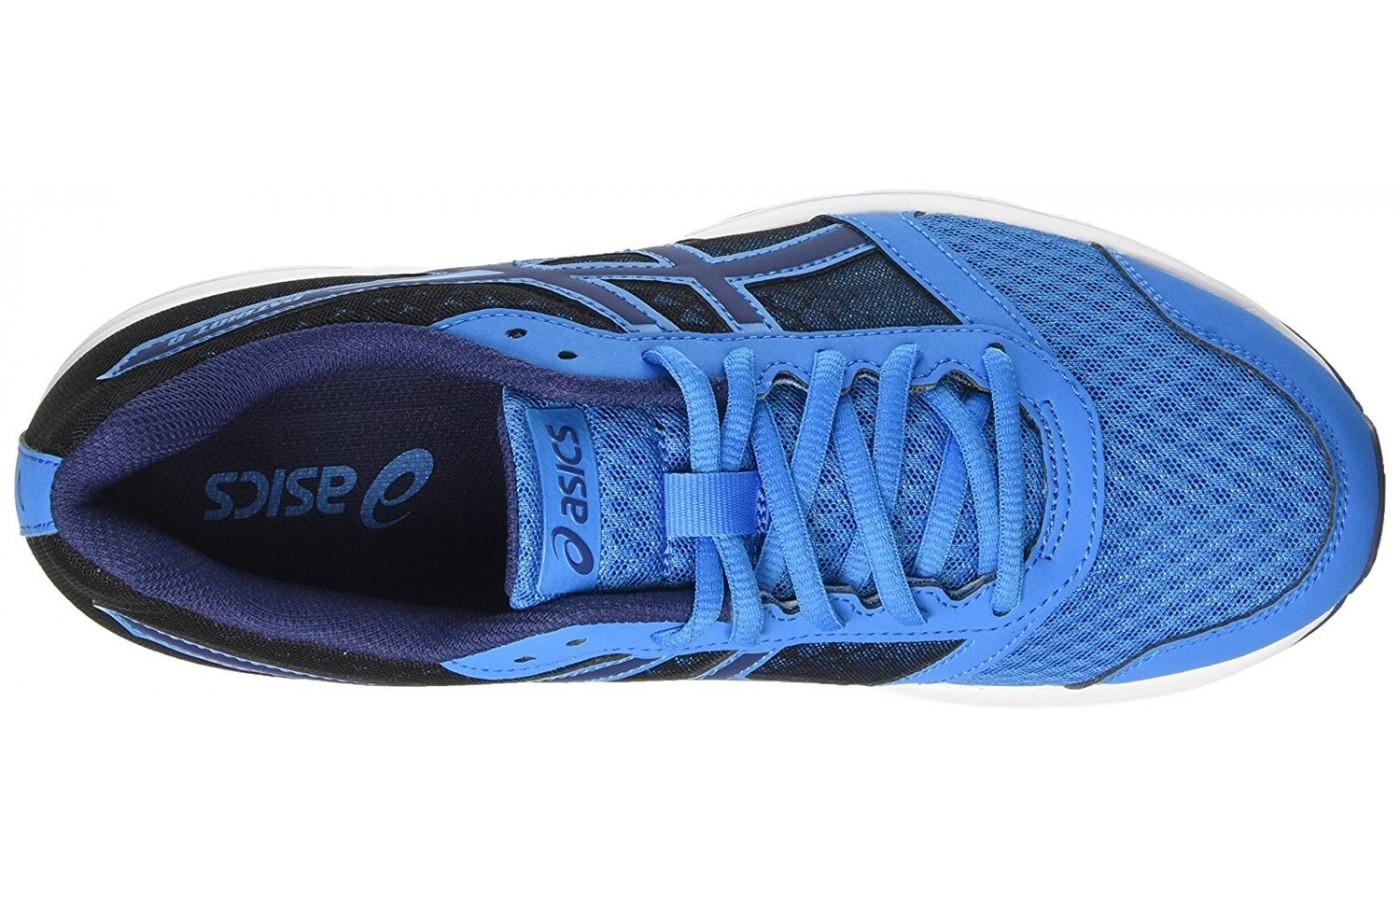 the breathable mesh upper of the ASICS Patriot 8